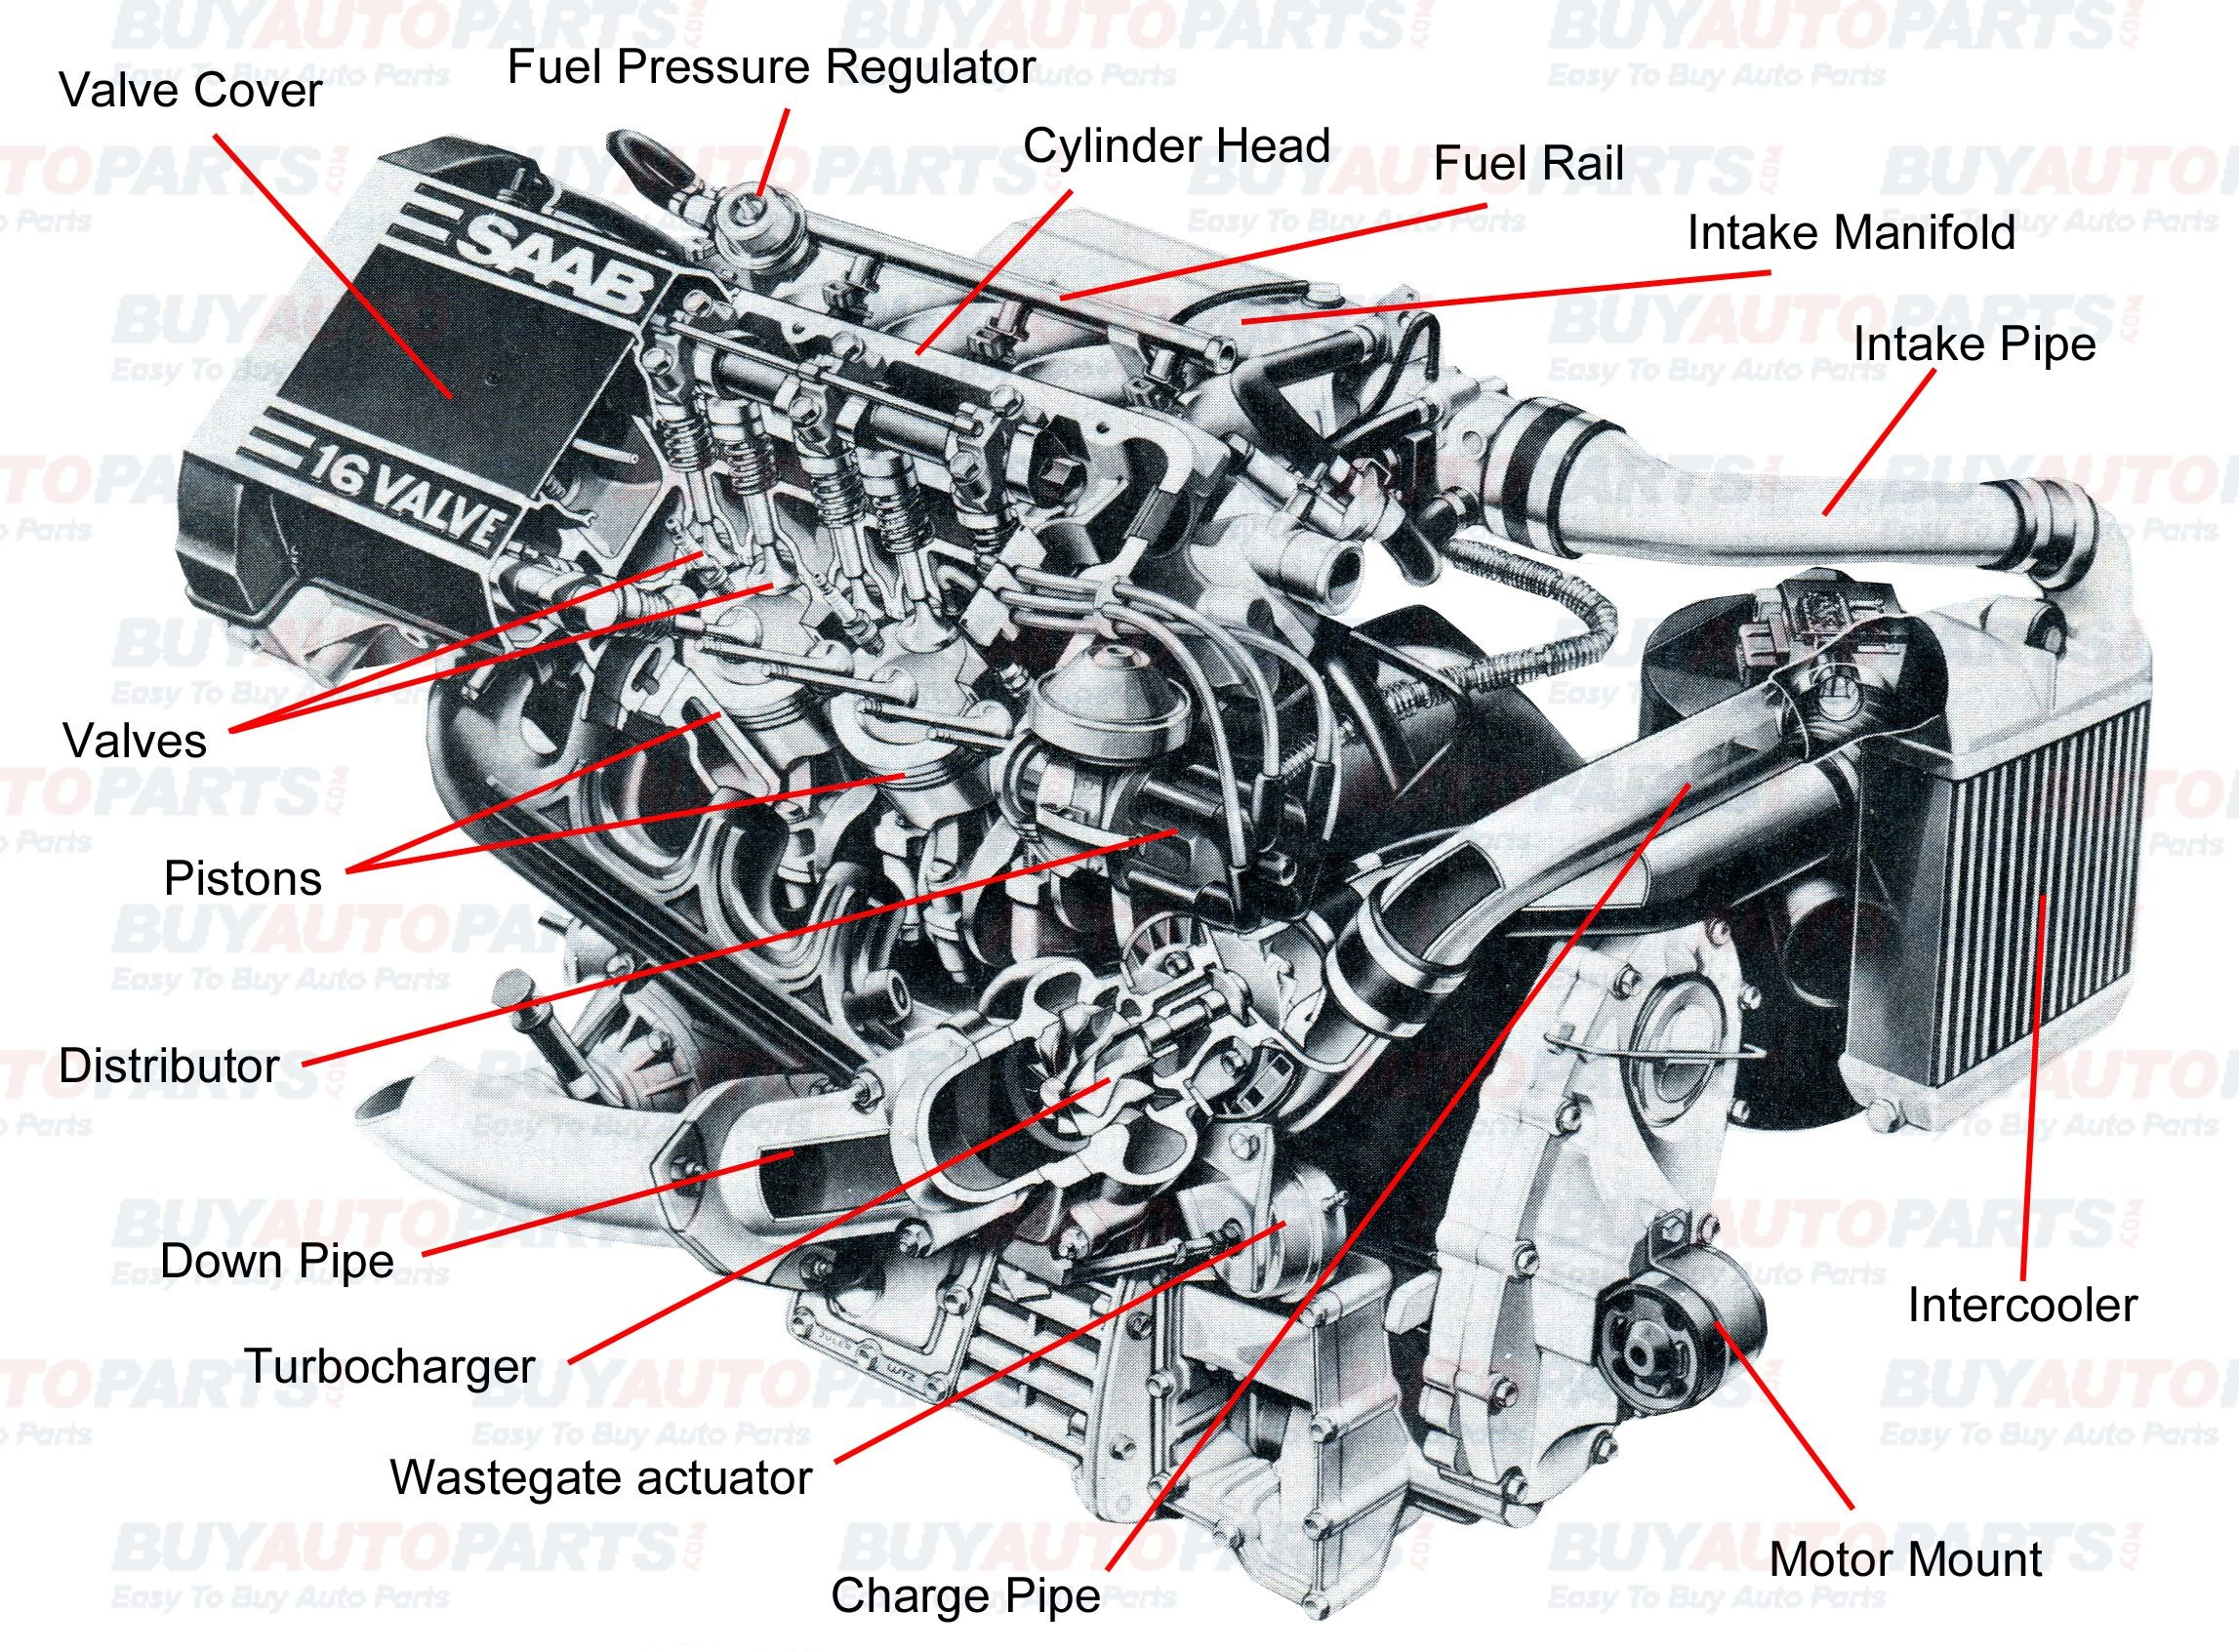 Parts Of A Car Diagram All Internal Bustion Engines Have the Same Basic Ponents the Of Parts Of A Car Diagram